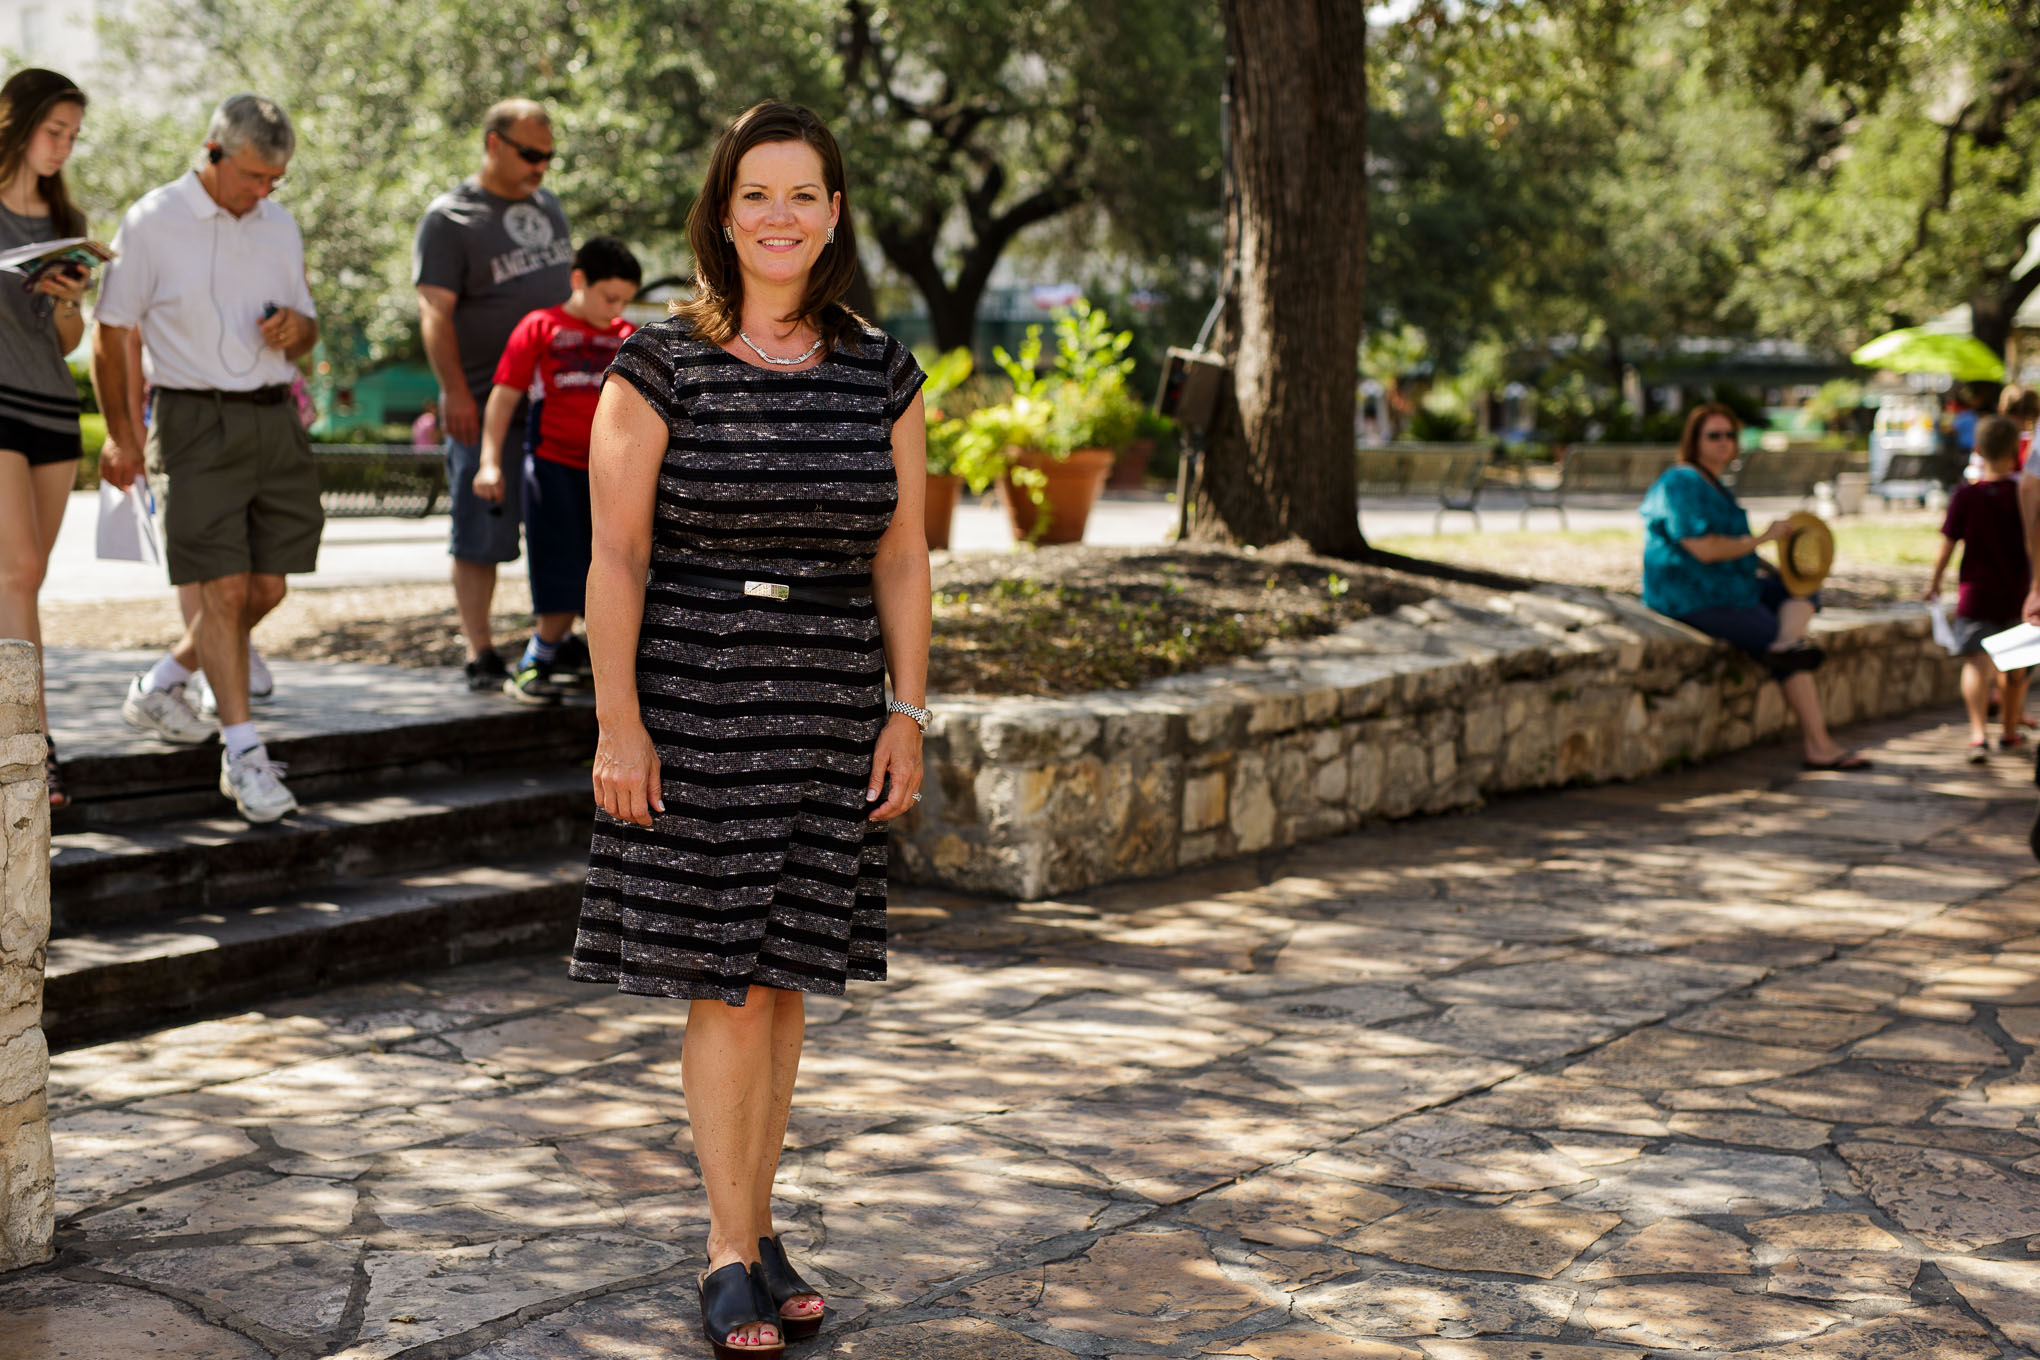 Alamo Director Becky Dinnin stands atop one of the selected archaeology dig sites slated in the next weeks. Photo by Scott Ball.